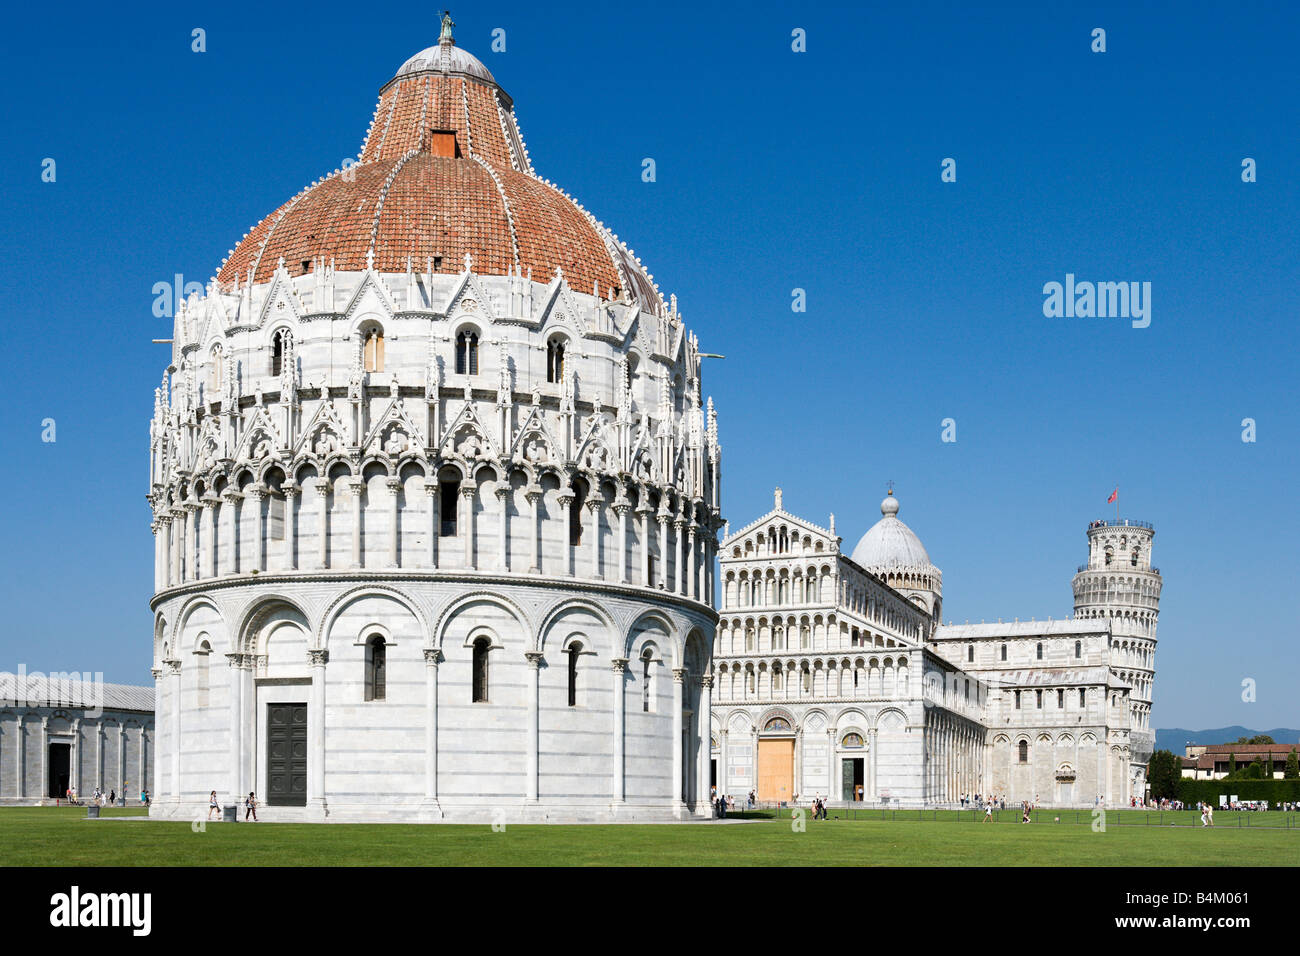 The Baptistry, Duomo and Leaning Tower, Piazza dei Miracoli, Pisa, Tuscany, Italy Stock Photo